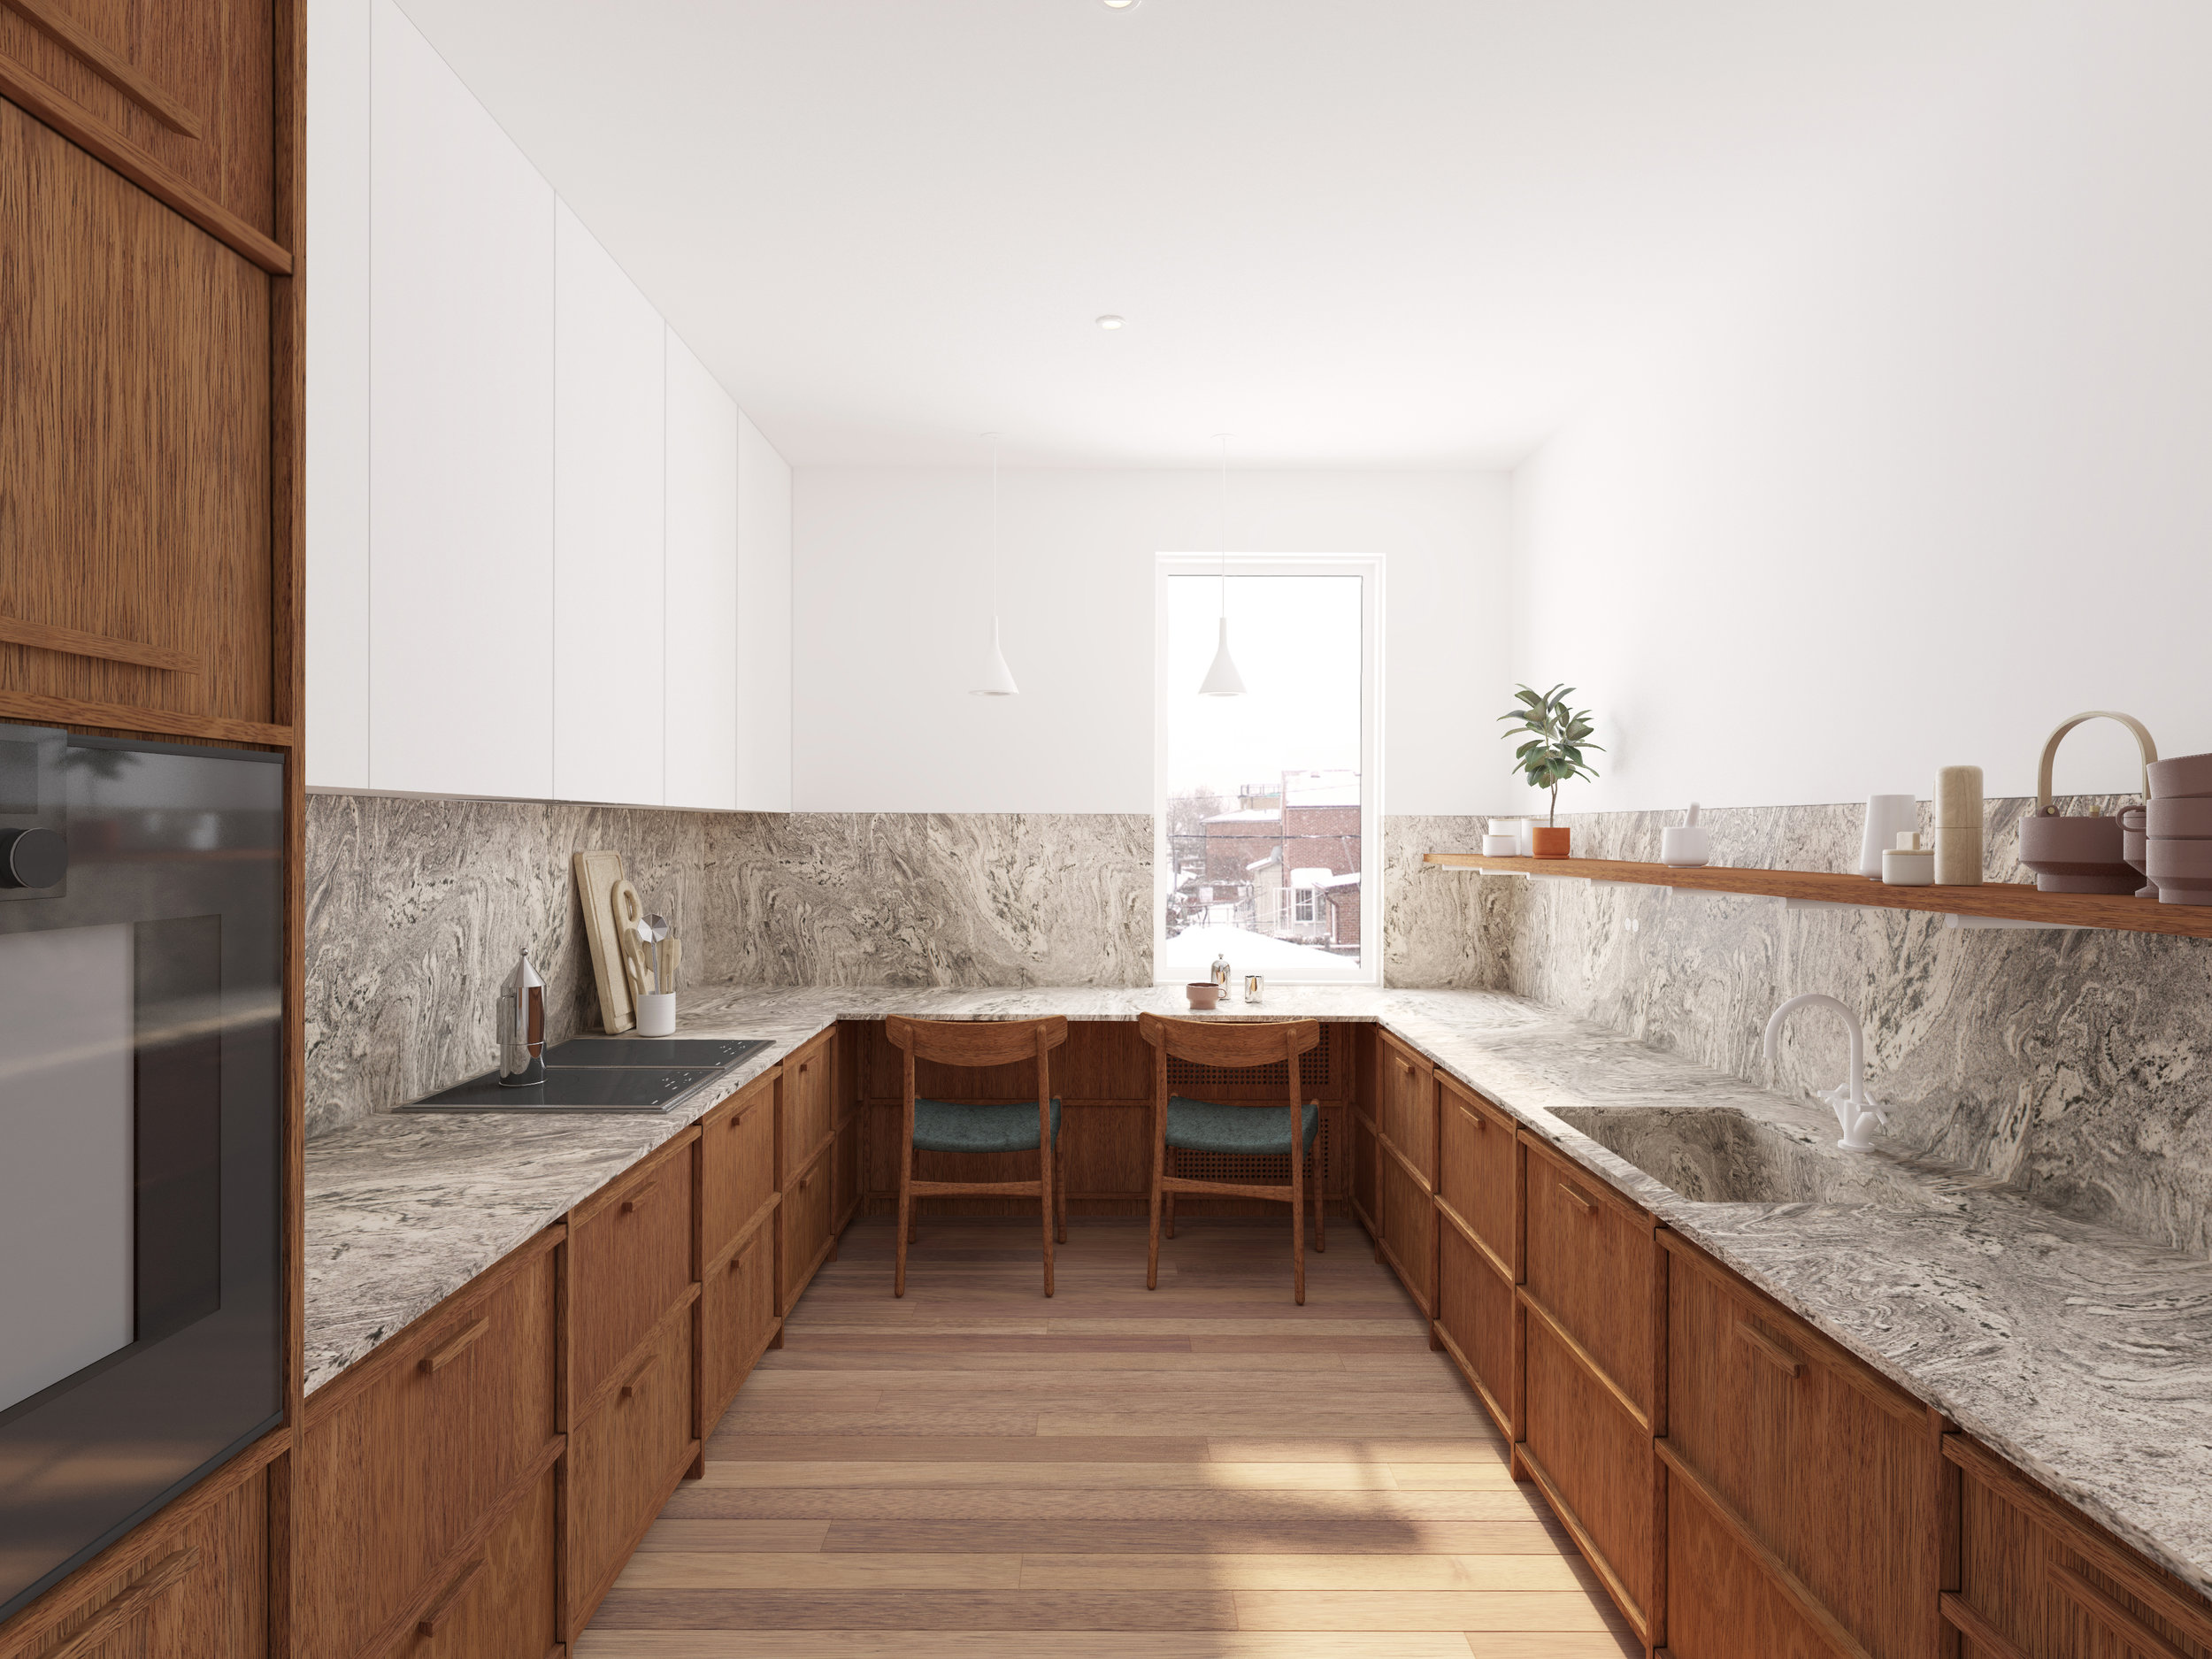 View of entire kitchen renovation, showing breakfast nook and wood cabinetry which lines the walls